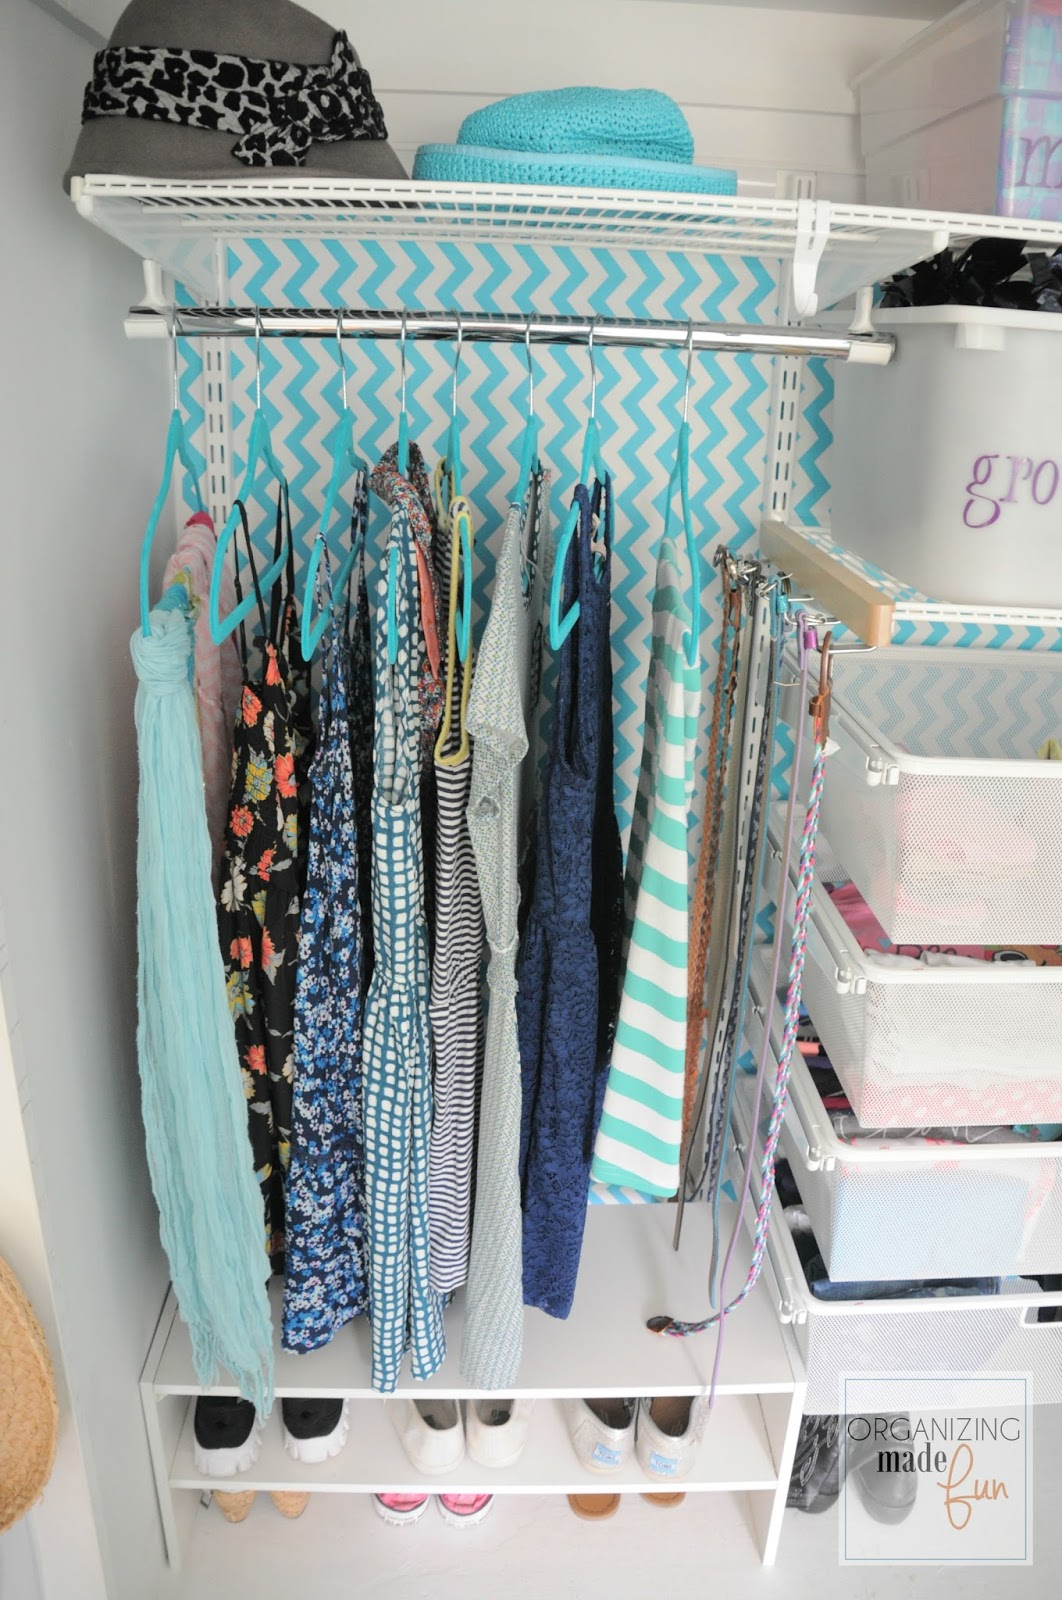 Fantastic Organized Closet Trends | Organizing Made Fun: Organized Closet  Trends JY56